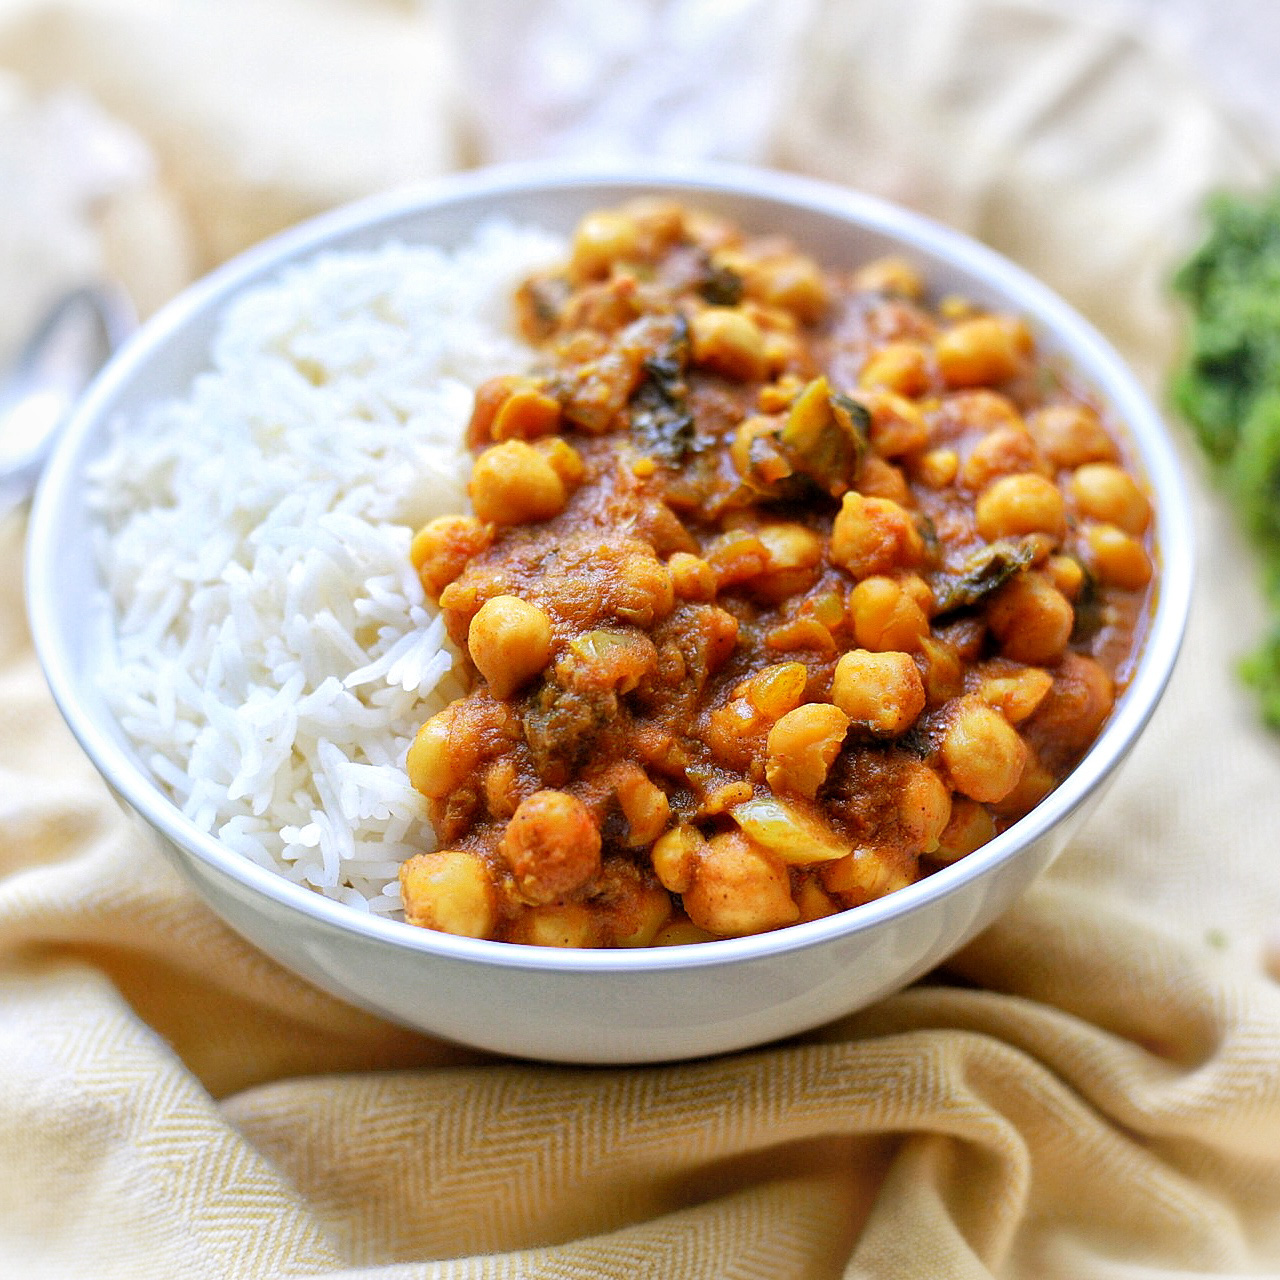 Spicy Caribbean Chickpea Curry with basmati rice